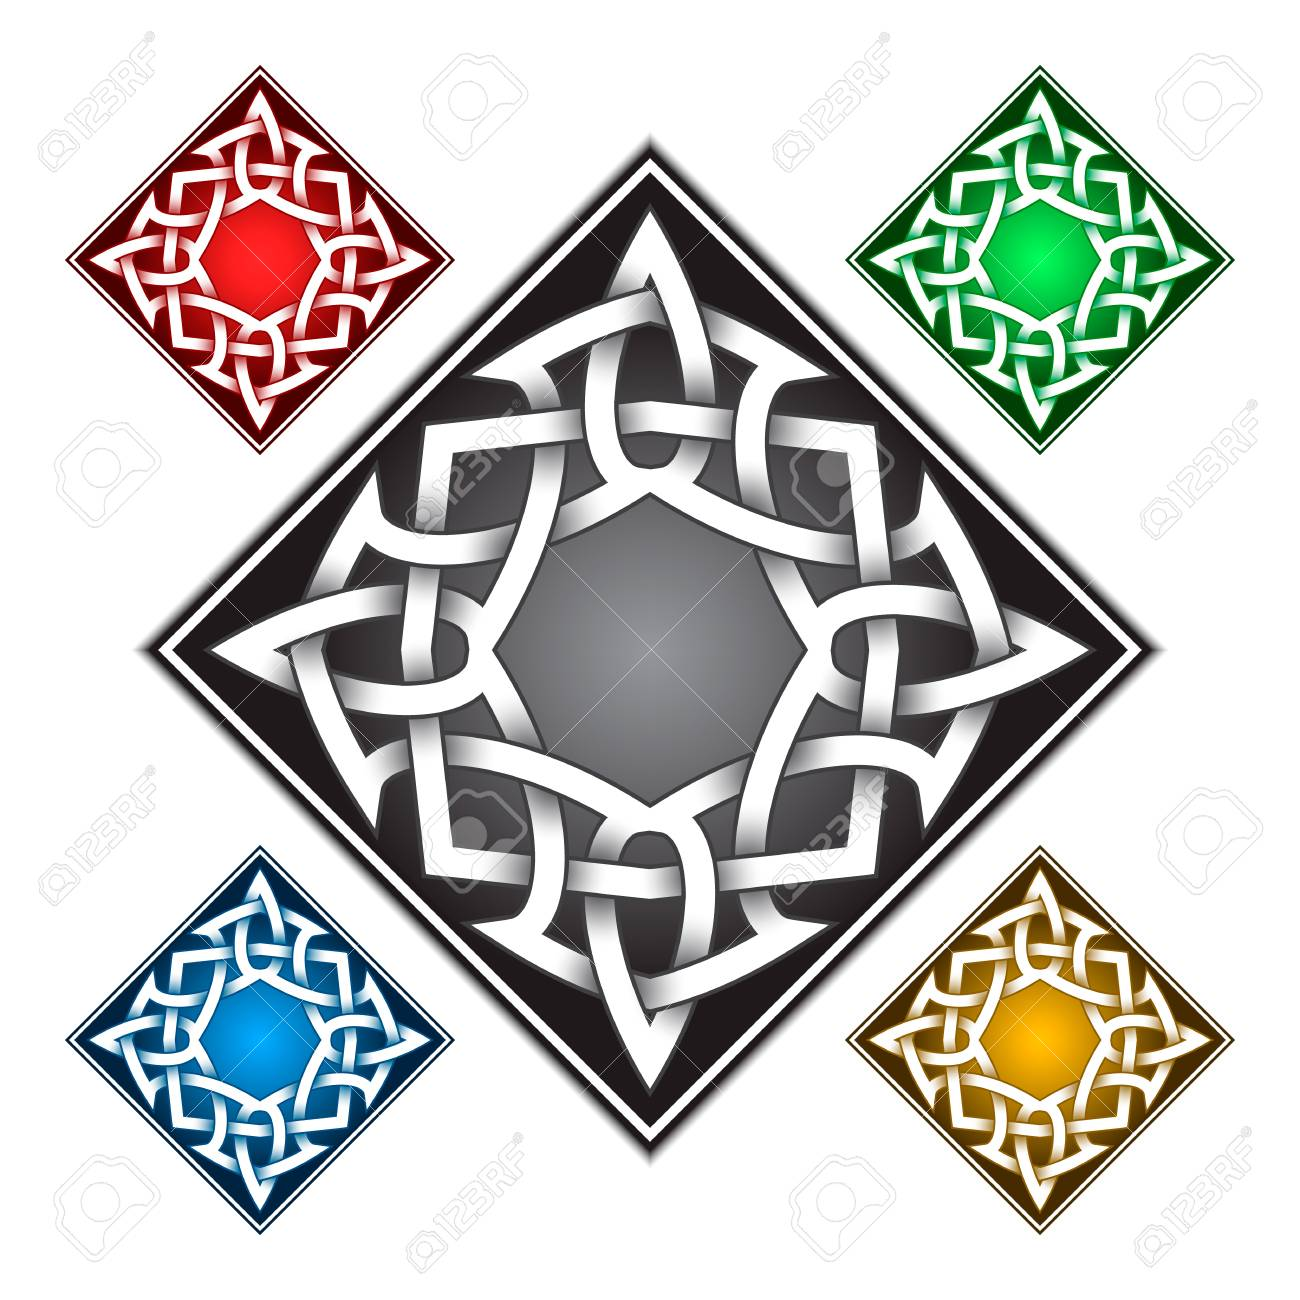 Rhombus Icon Template In Celtic Knots Style Stylish Tattoo Symbol